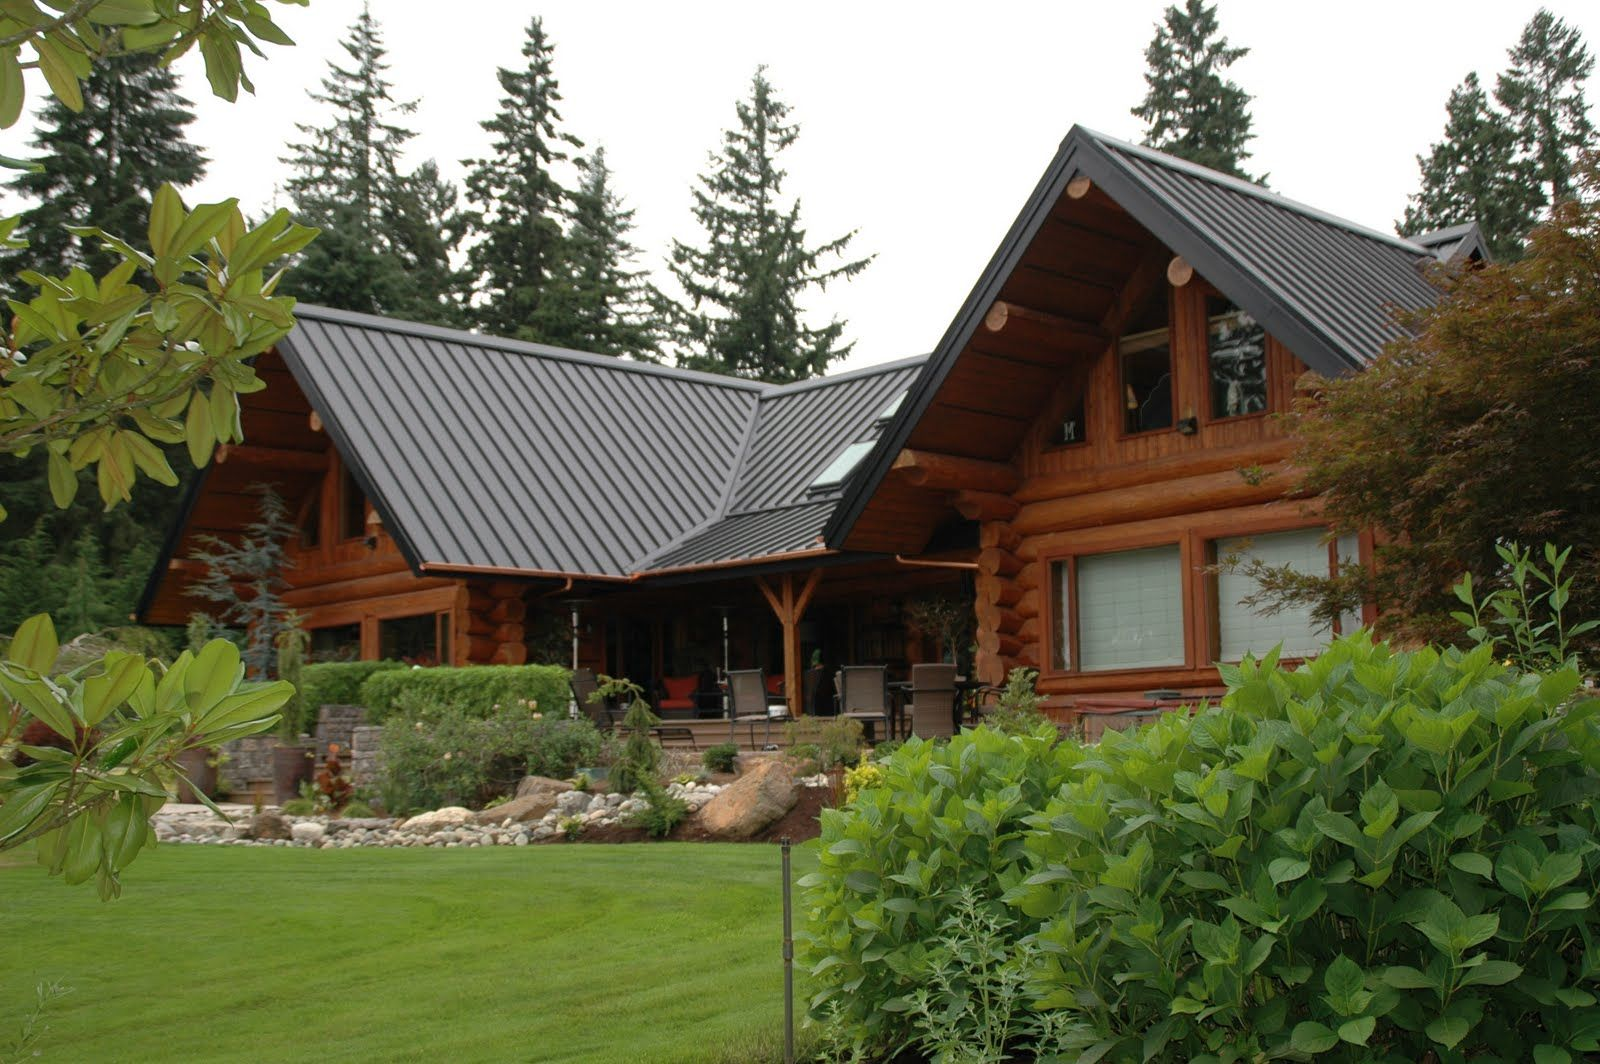 Best Sterling Roof And Copper Gutters True Gems With Images 640 x 480